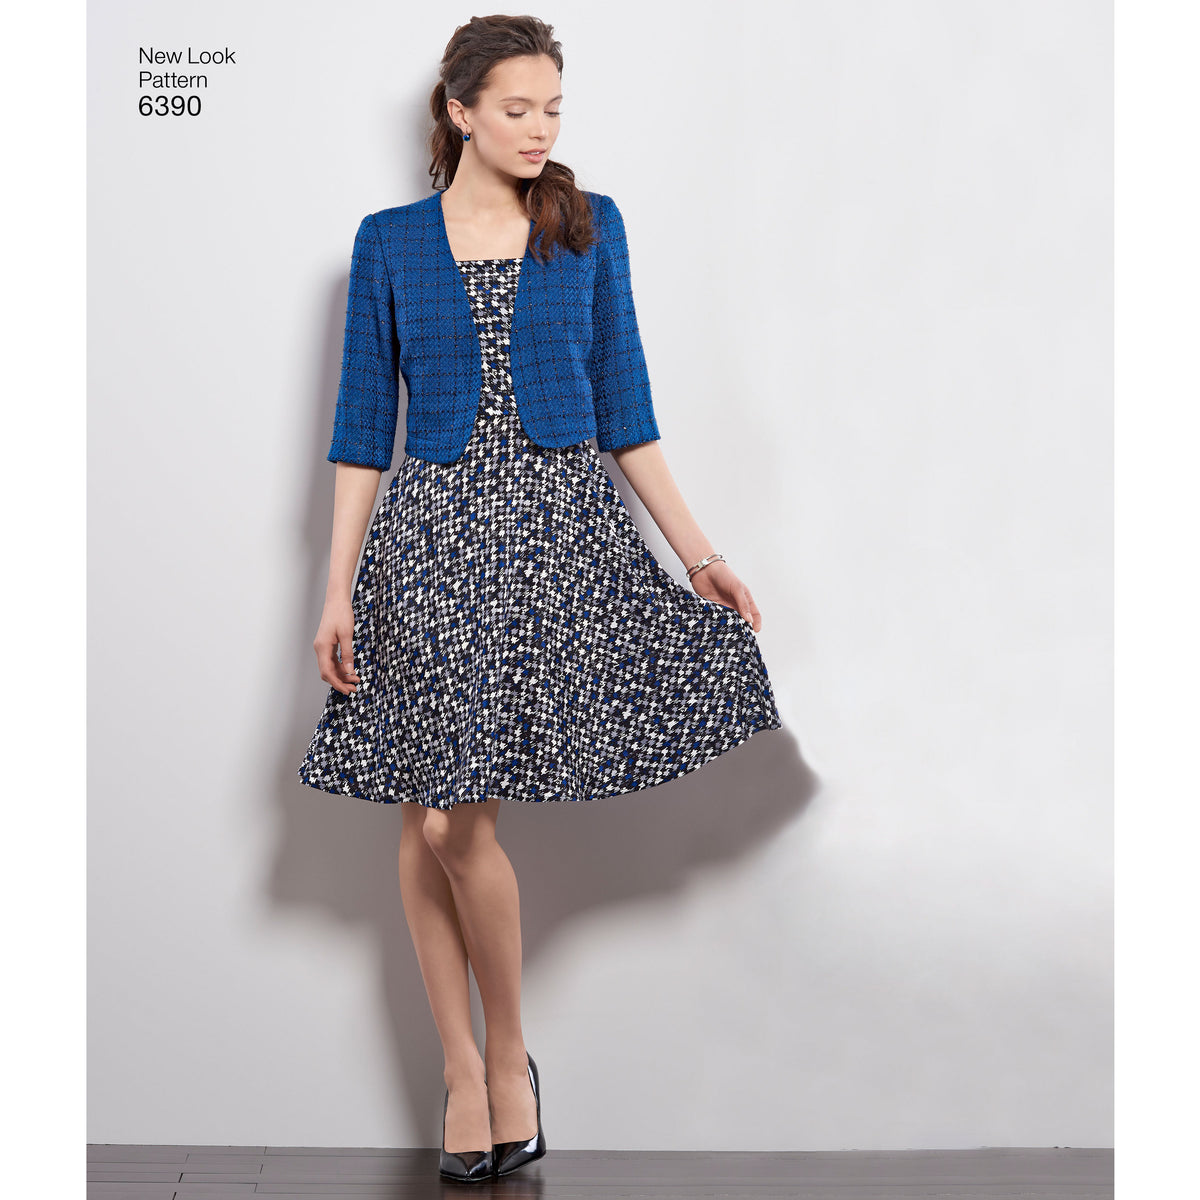 6390 Misses' Dresses with Full Skirt and Bolero